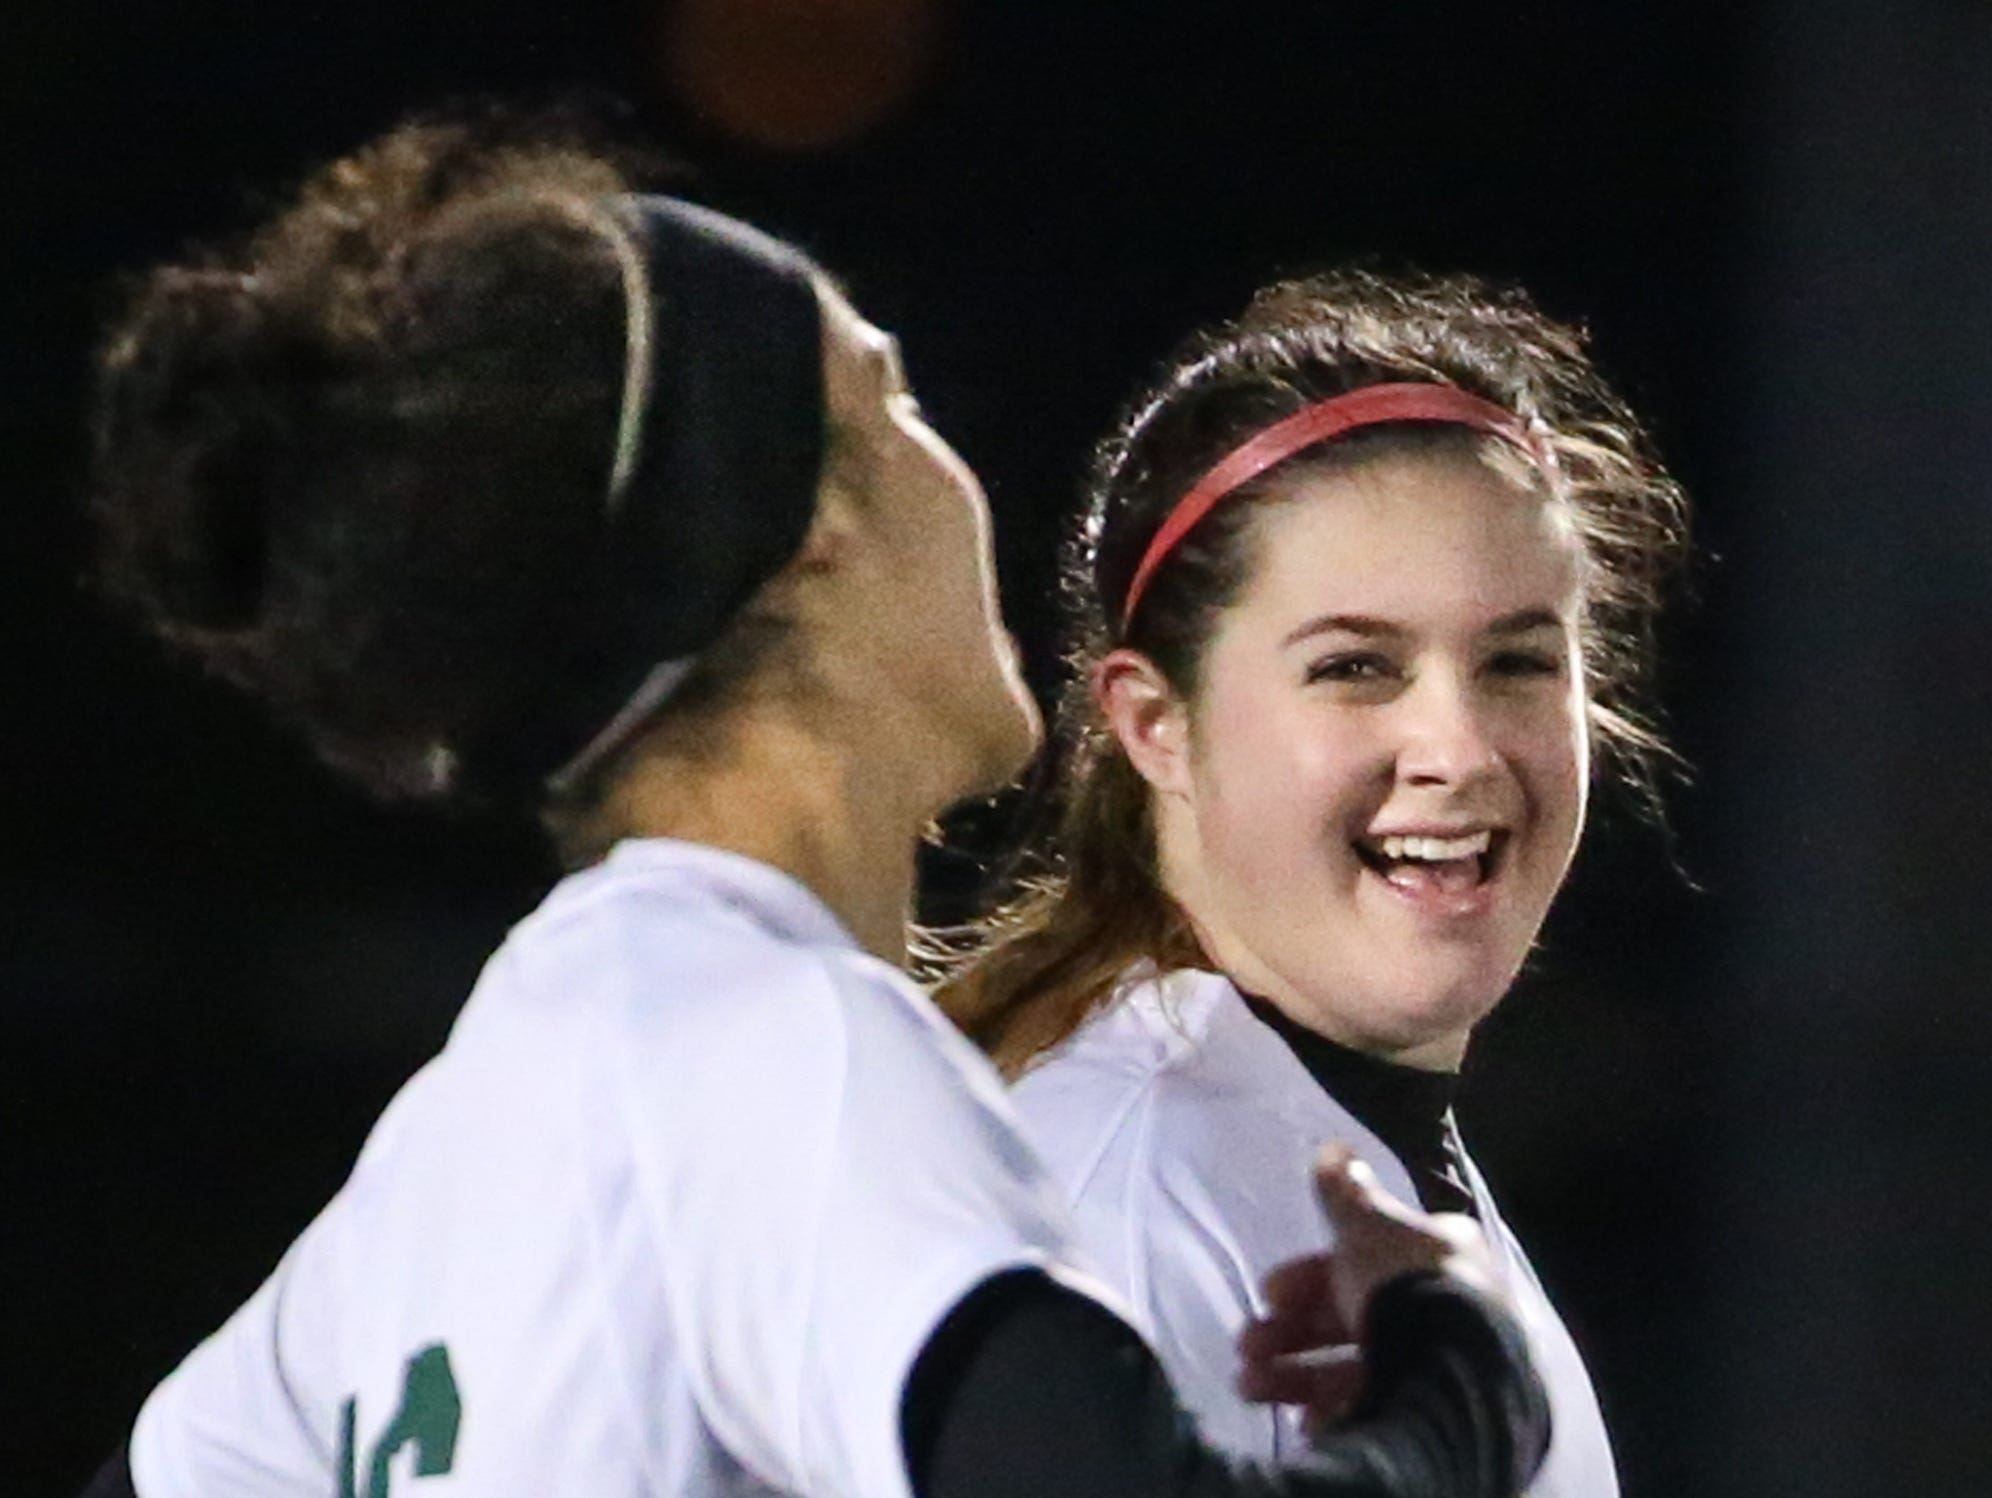 Karli Kumbalek (24) is all smiles after scoring a goal in last Tuesday's game against Beaver Dam.